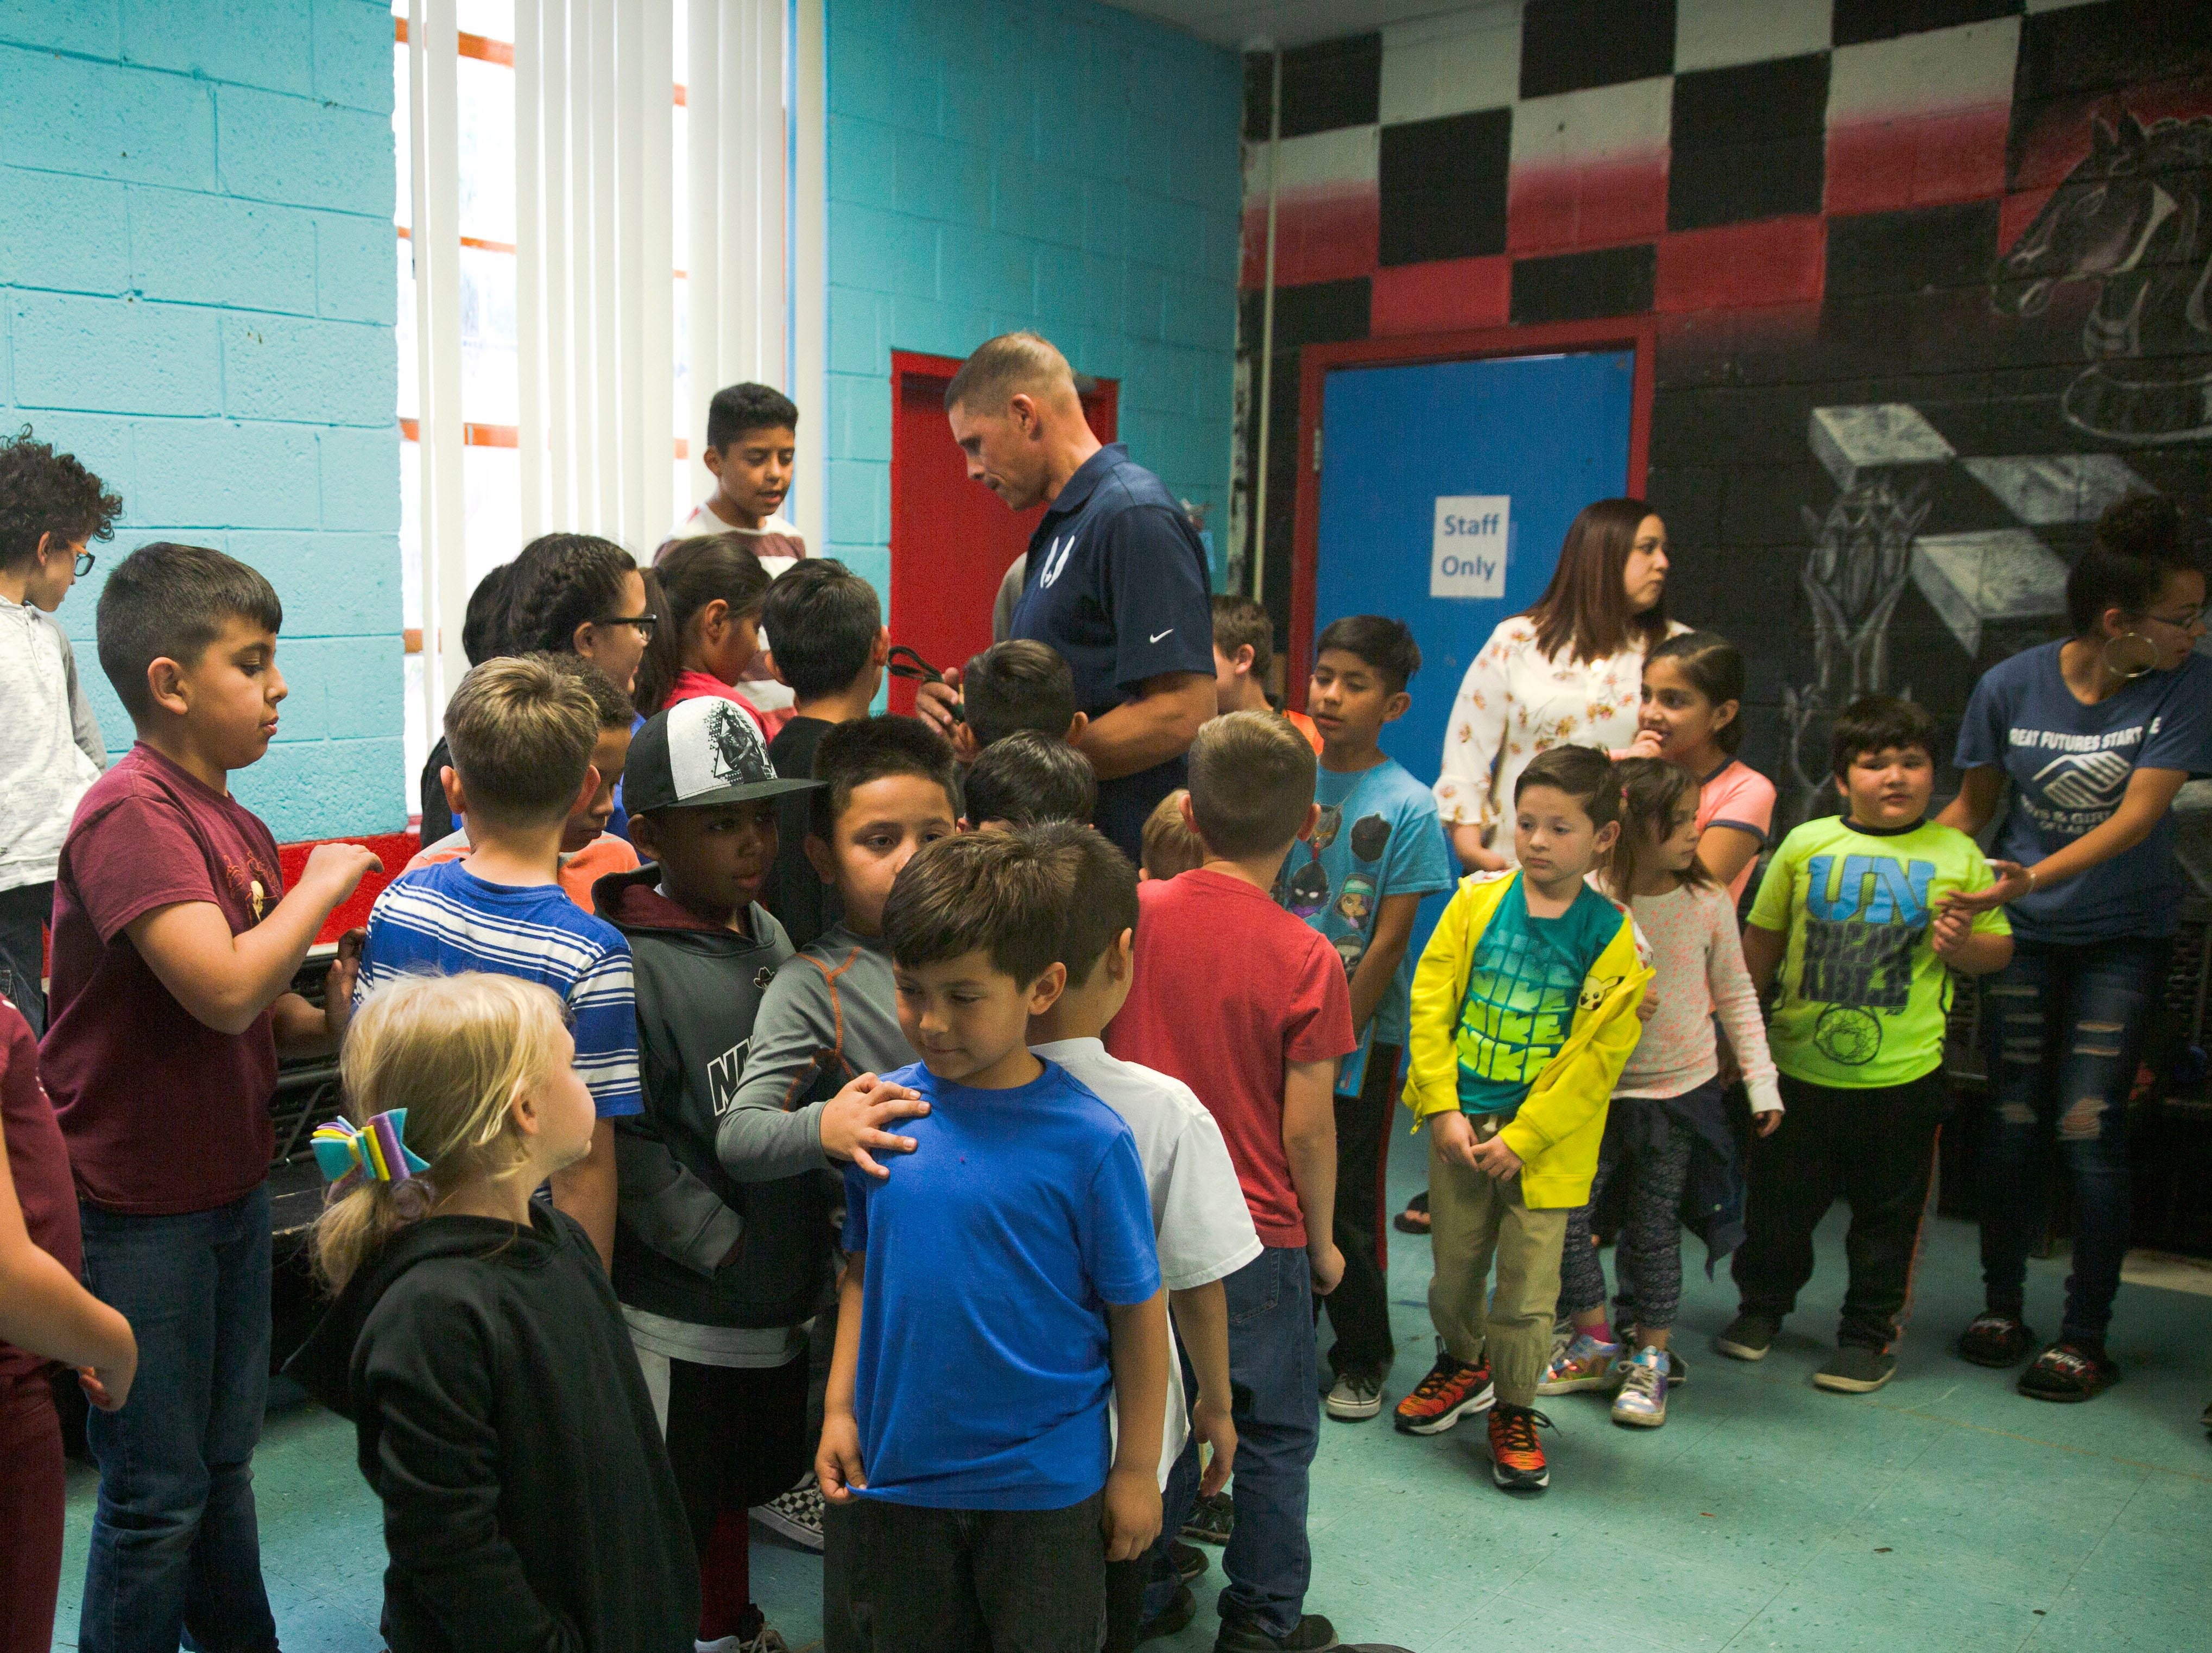 Olympic gold medalist Dan O'Brien greets children at the Las Cruces Boys and Girl's Club, Wednesday April 17, 2019, after speaking to them about always putting forth a good effort.